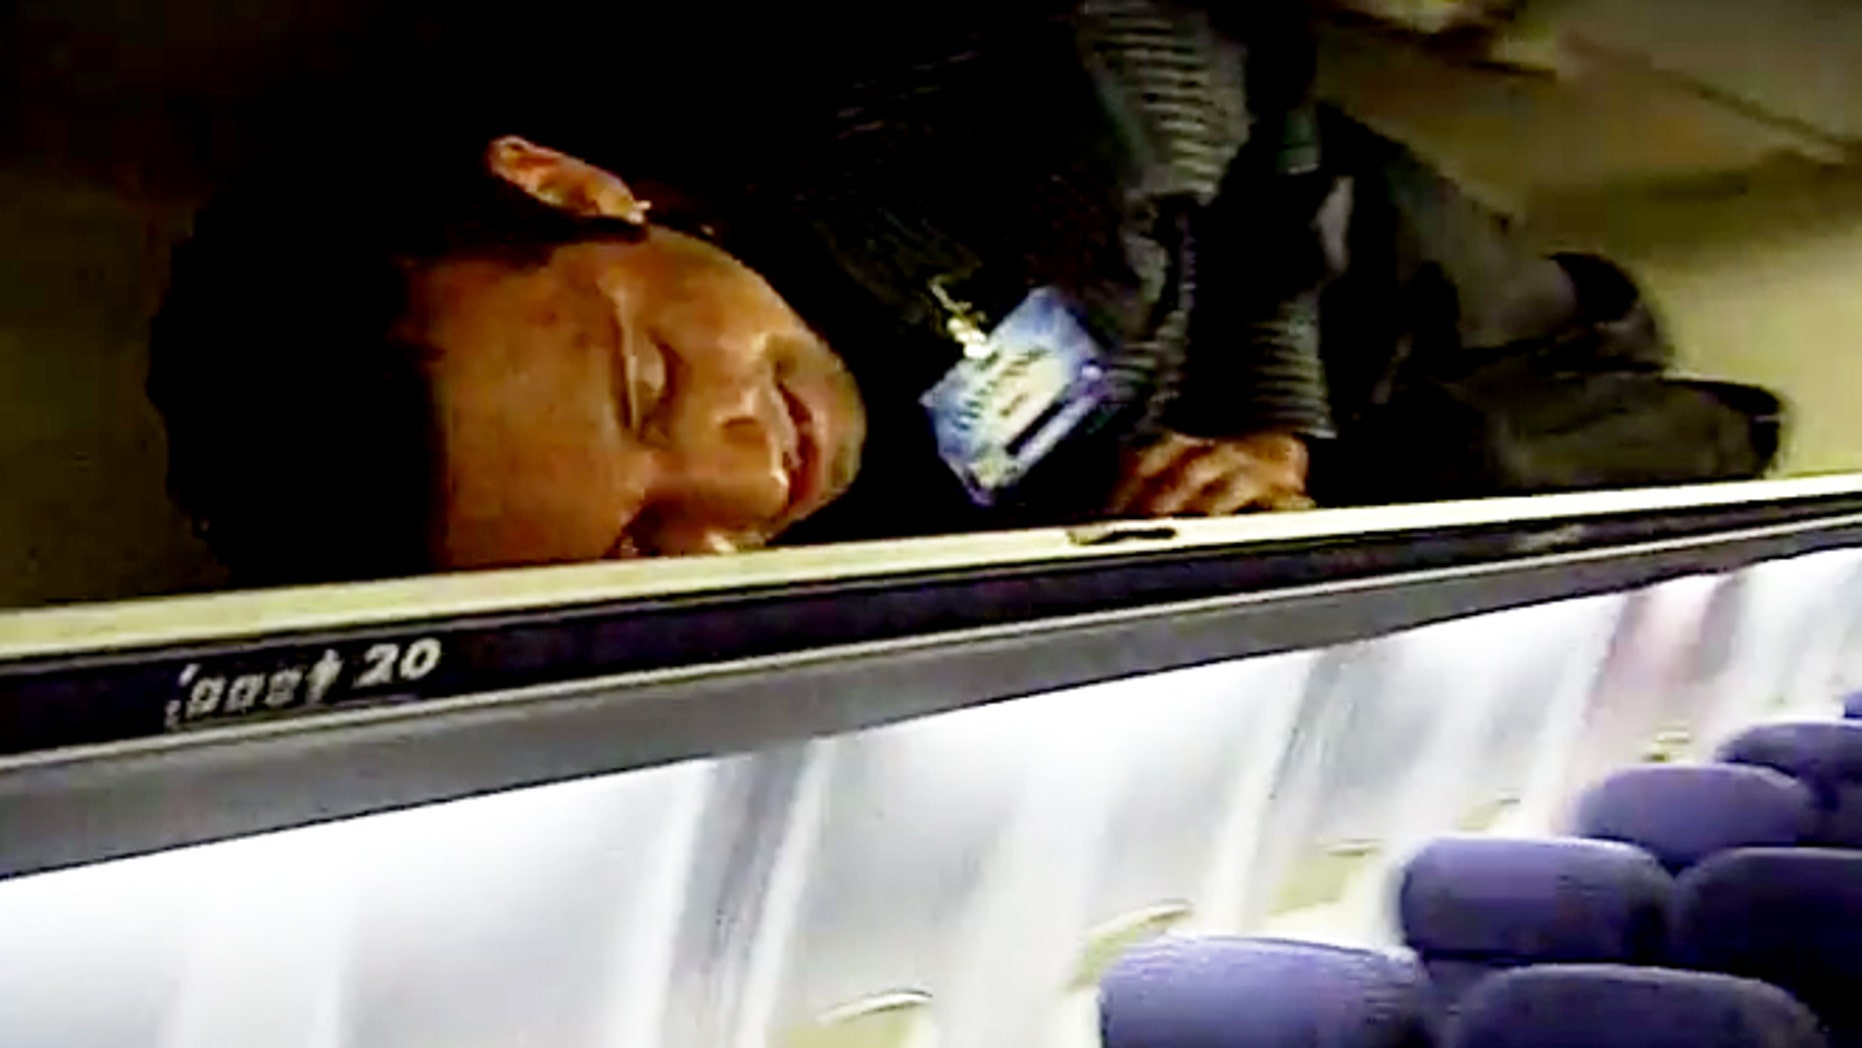 Crew members squeeze into overhead bins after passengers takeoff.